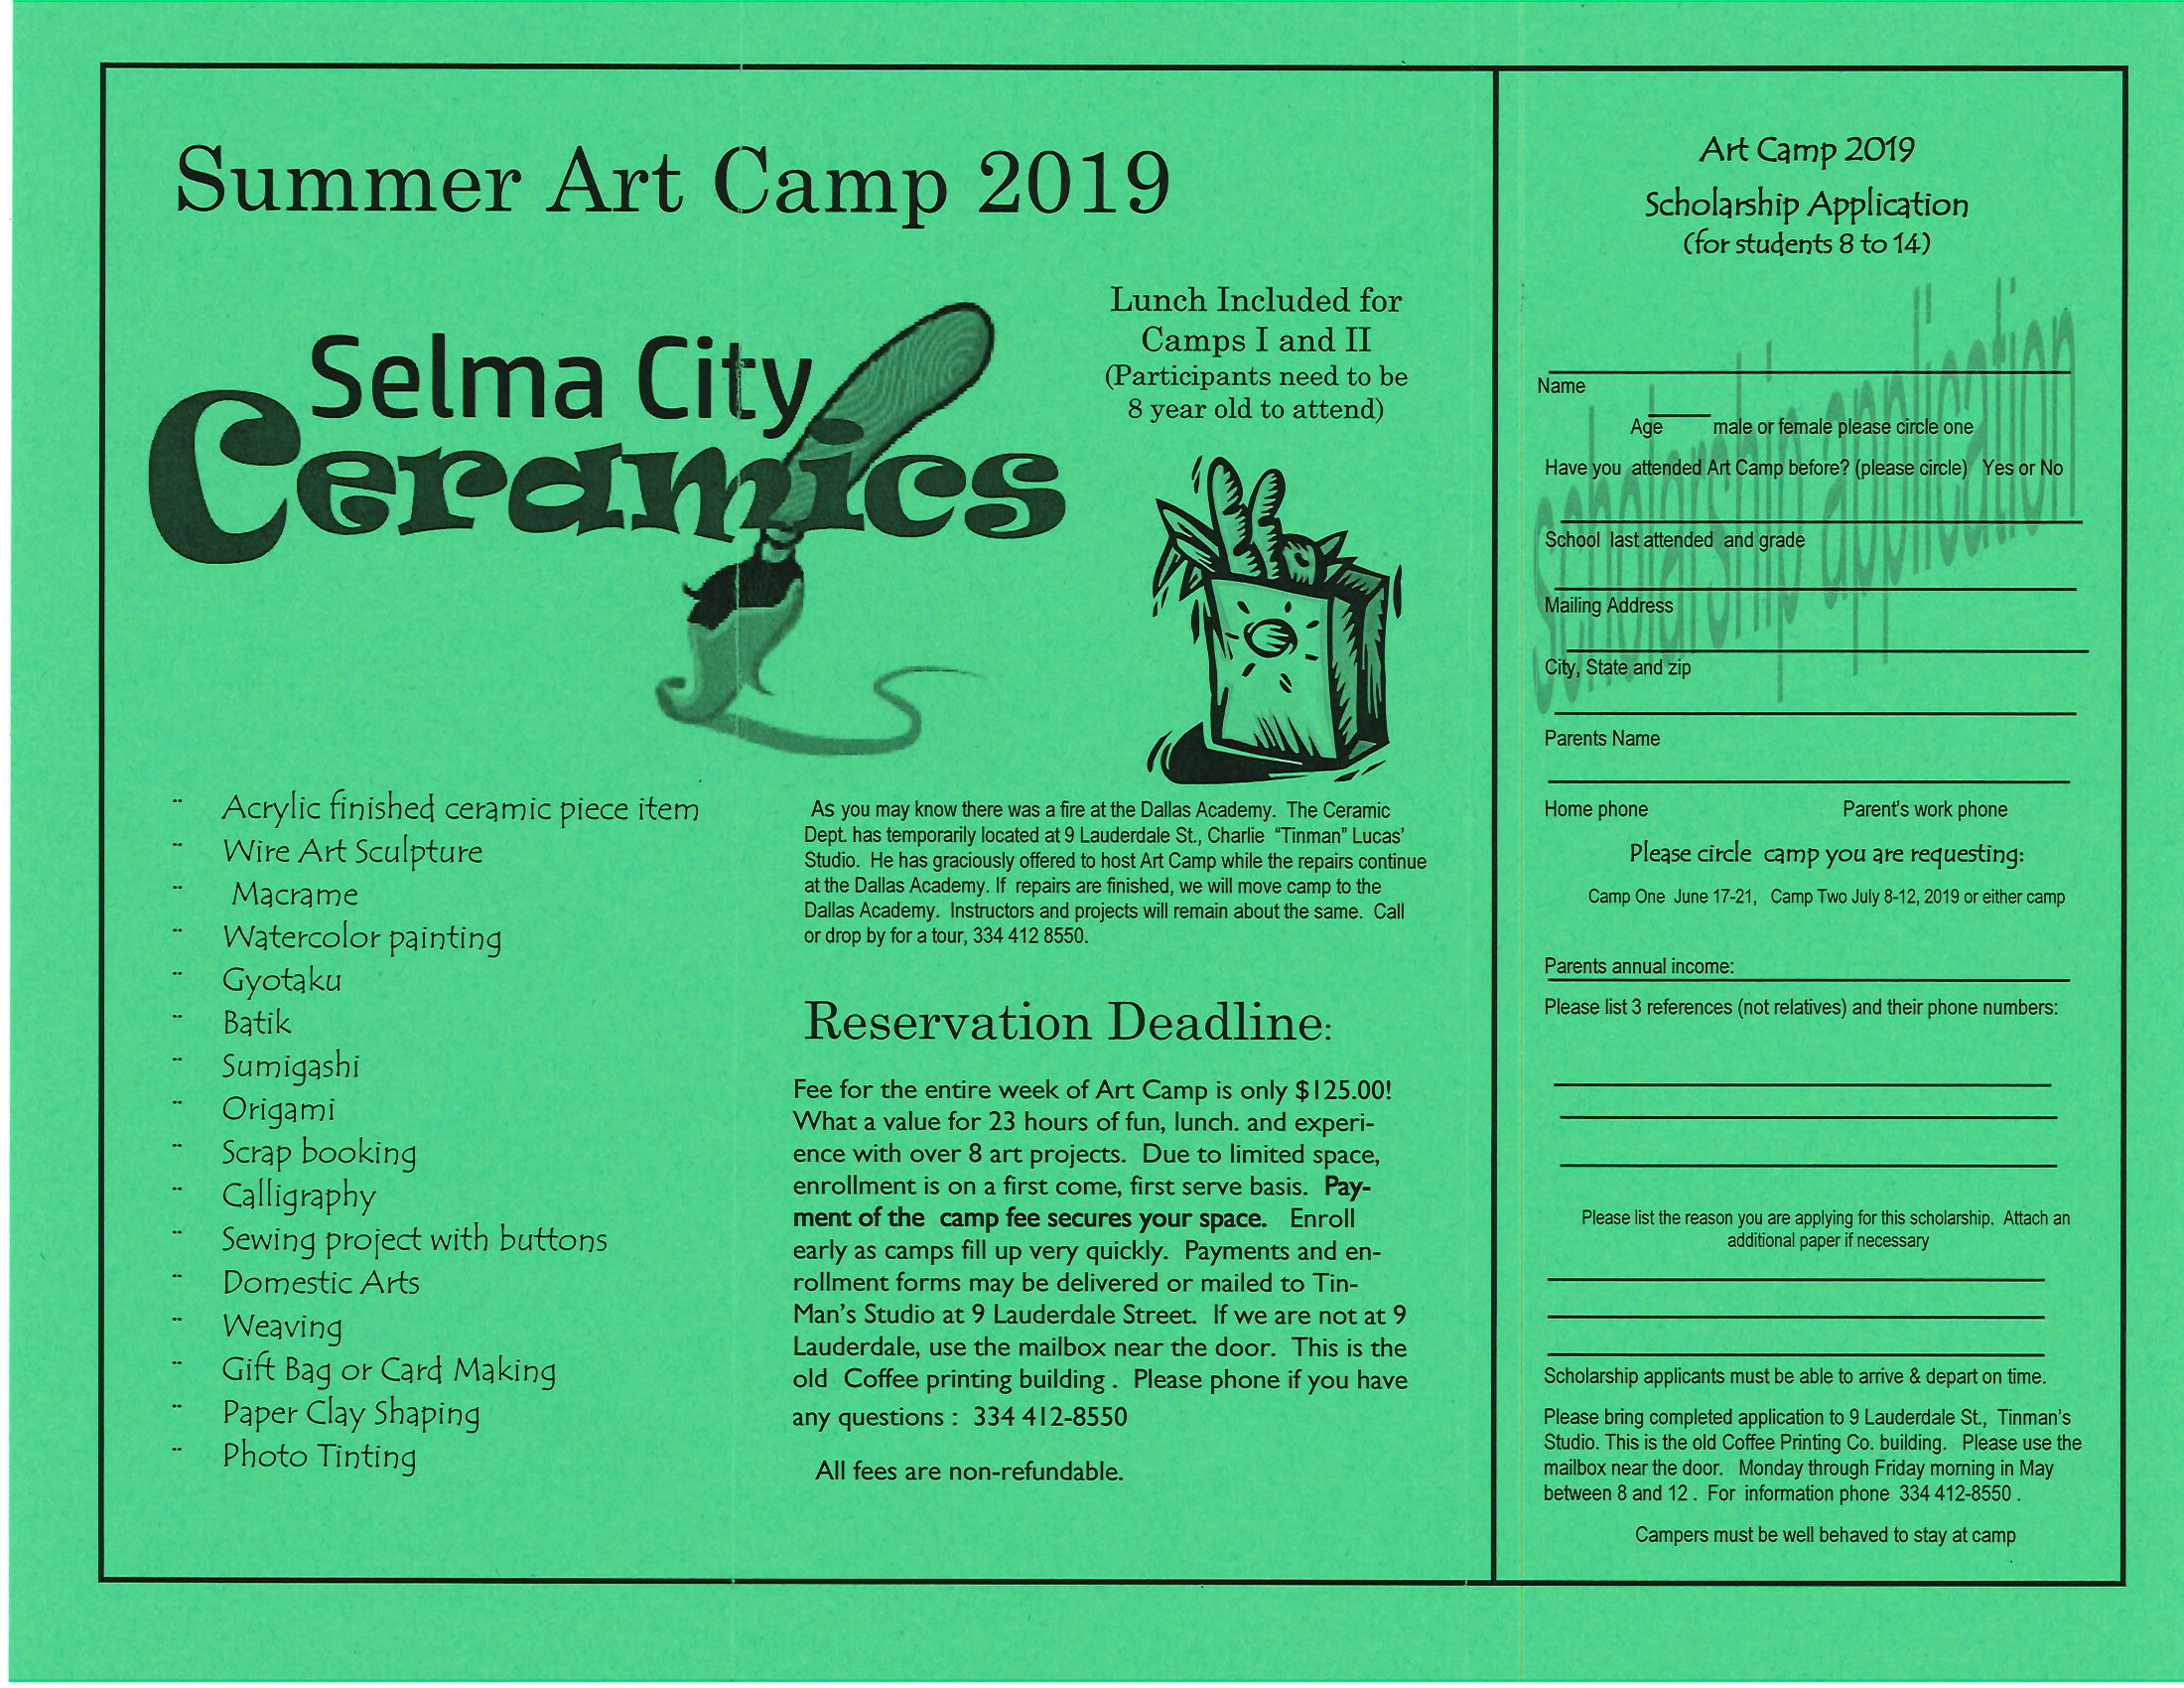 Art Camp 2019 Page 1